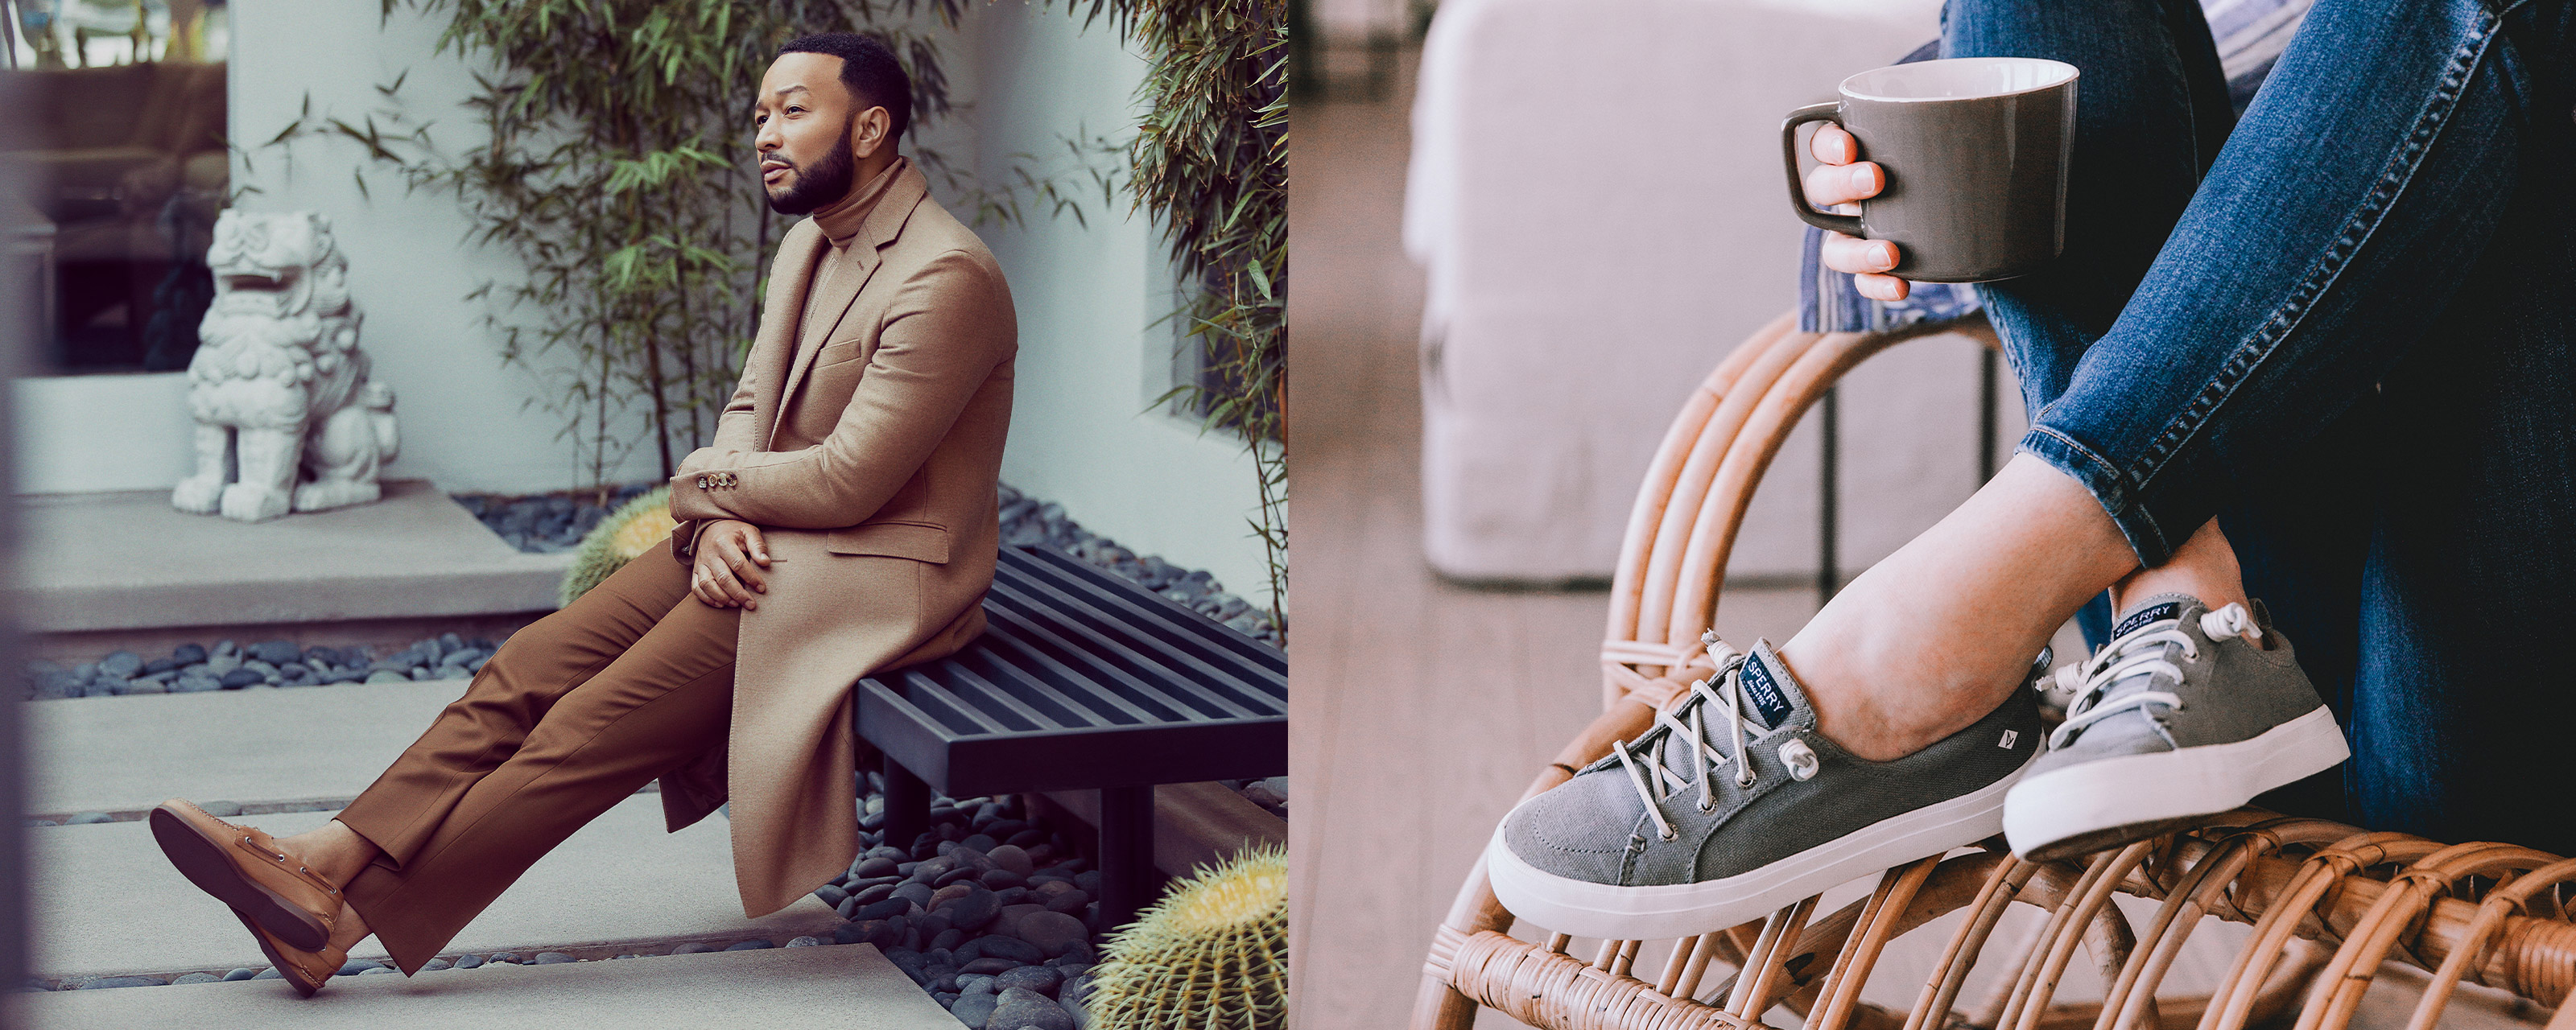 John Legend sitting on a bench with his legs crossed, wearing brown leather boat shoes.